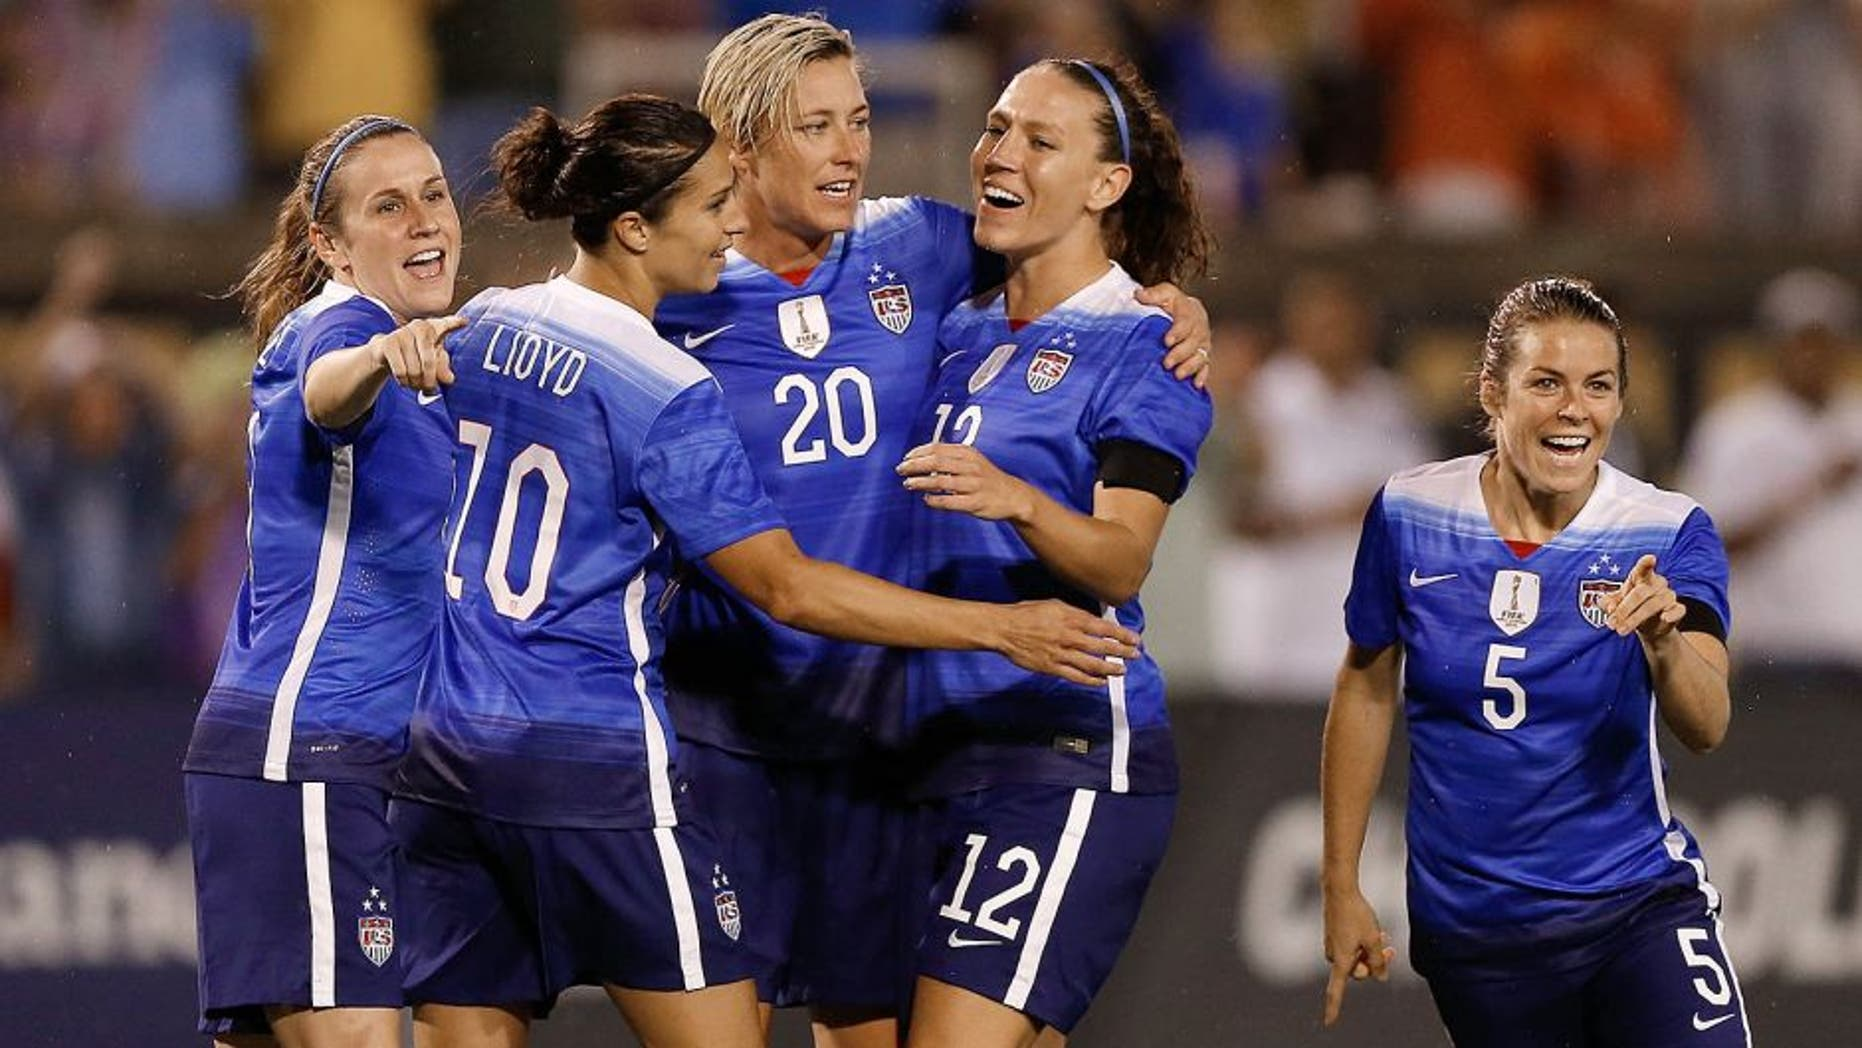 CHATTANOOGA, TN - AUGUST 19: (From left to right) Midfielder Heather O'Reilly #9, midfielder Carli Lloyd #10, forward Abby Wambach #20, midfielder Lauren Holiday #12 and defender Kelley O'Hara #5 of the United States celebrate Wambach's first half goal during the friendly match against Costa Rica at Finley Stadium on August 19, 2015 in Chattanooga, Tennessee. (Photo by Mike Zarrilli/Getty Images)